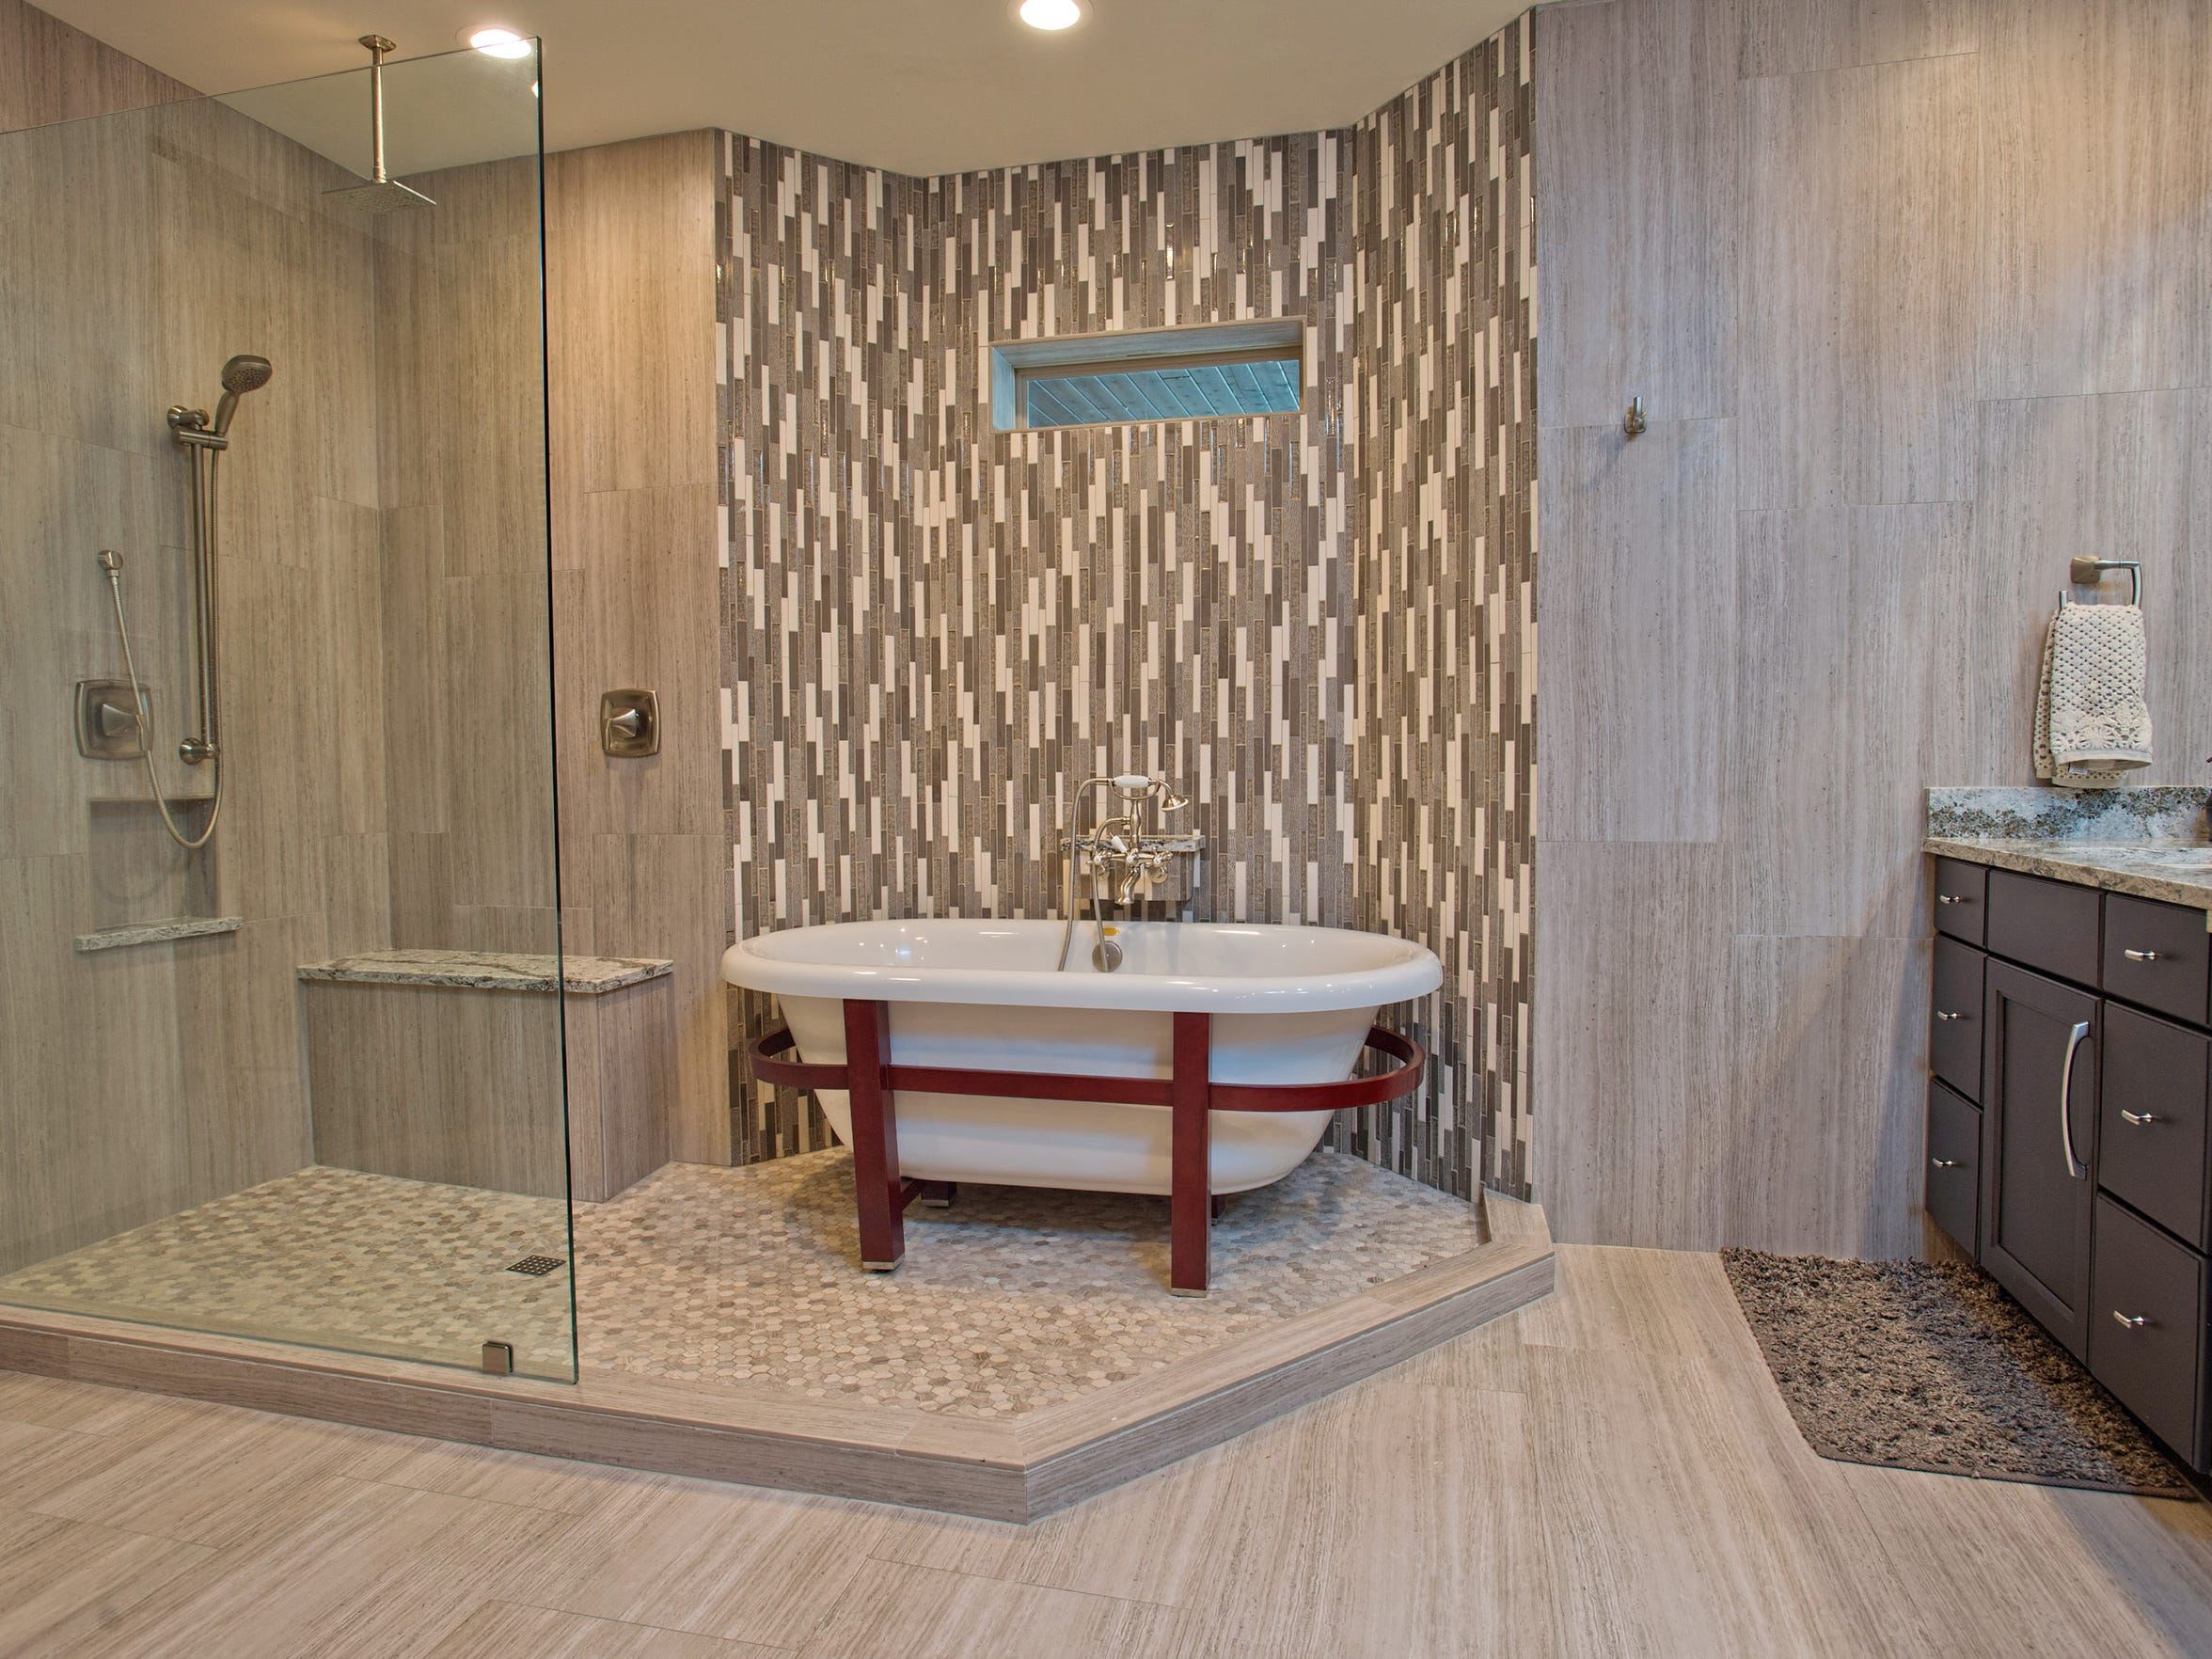 A unique shower and bath tub set up in the extra spacious master bath